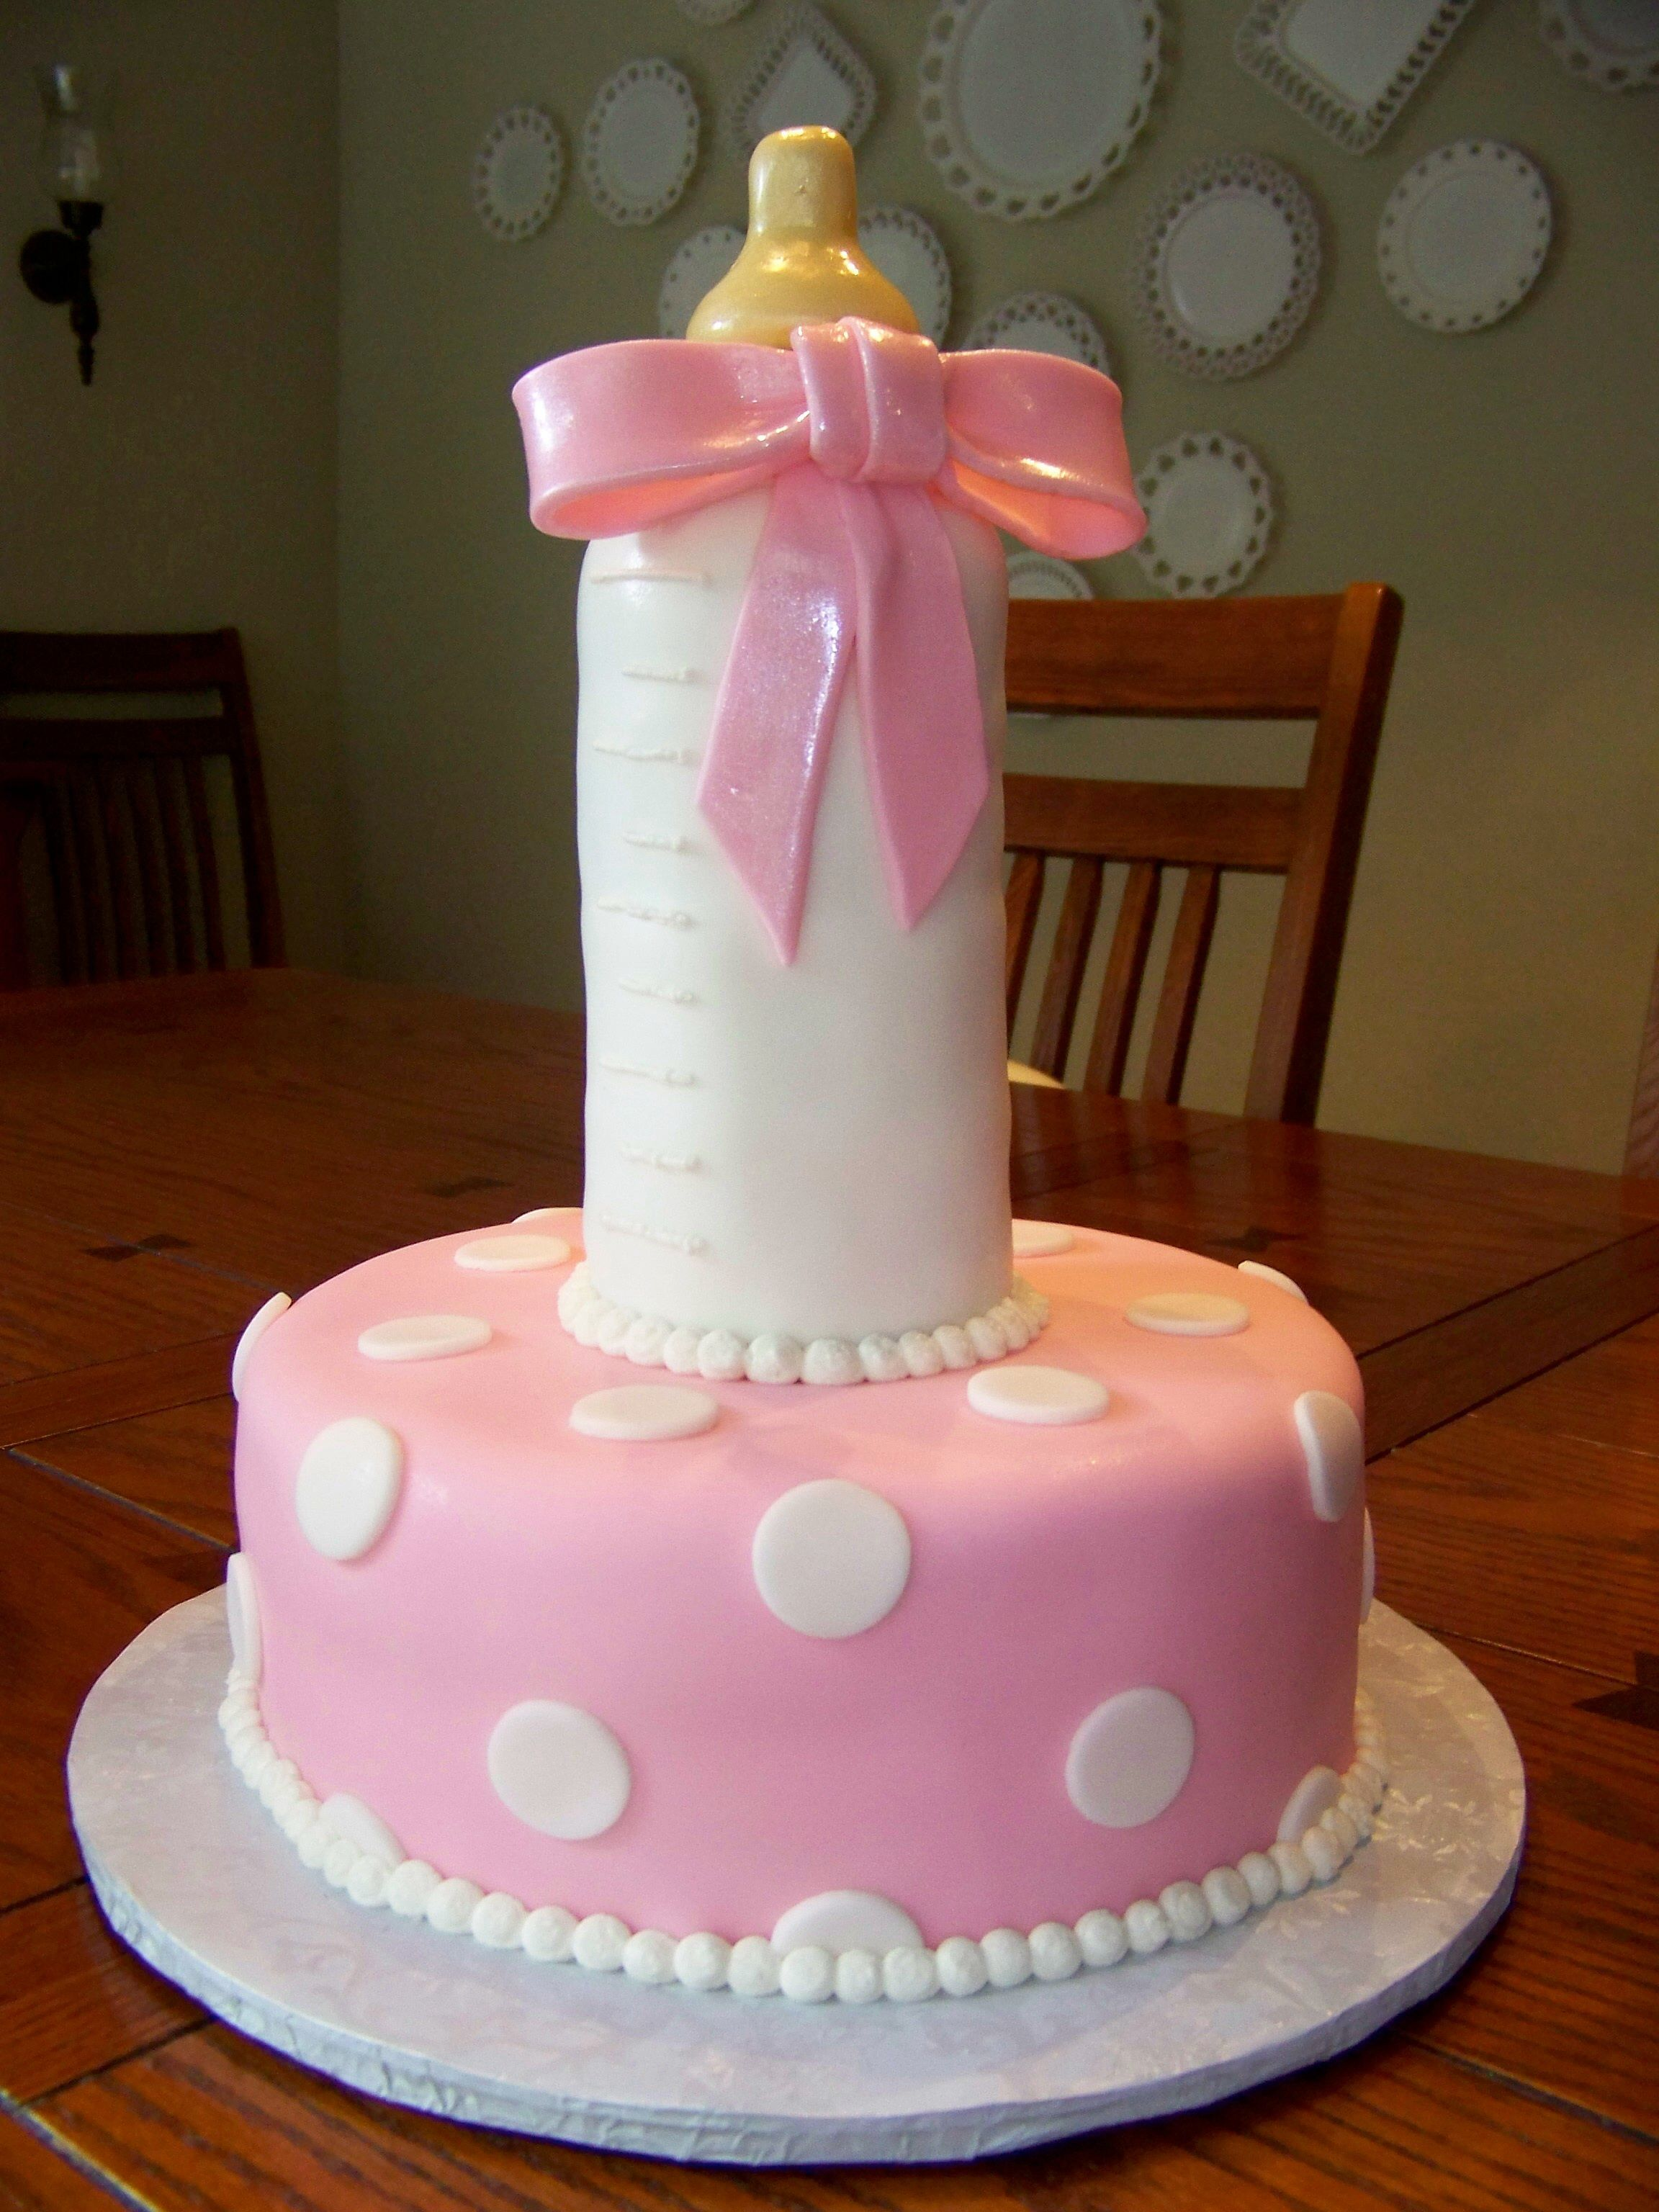 Baby Bottle Cake Images : Baby bottle cake! Love this one. #customcakes # ...